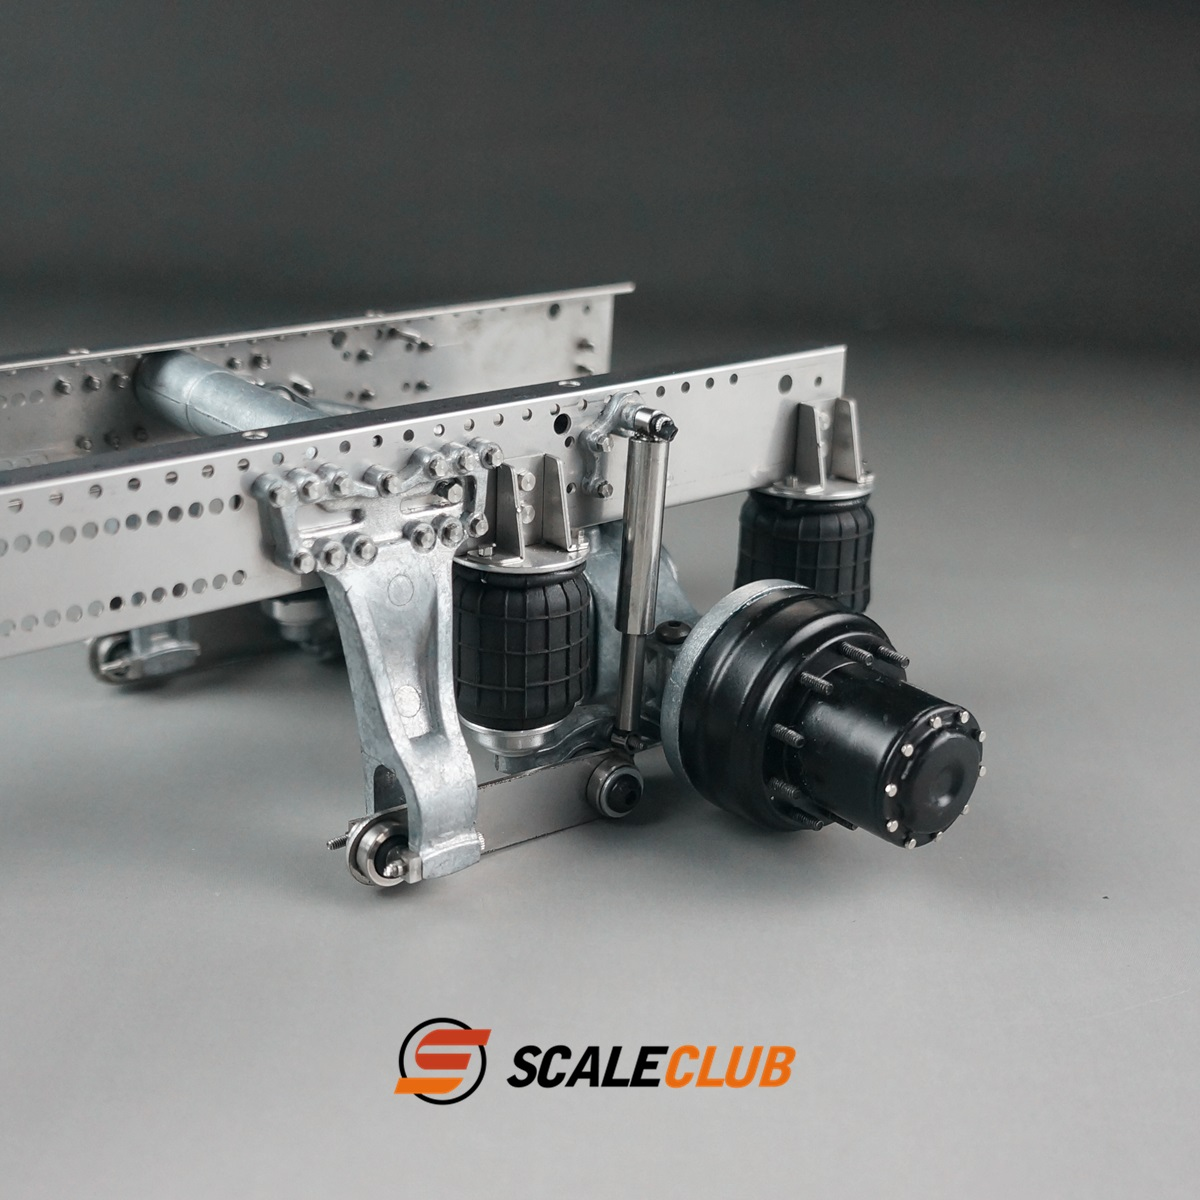 SCALECLUB  1/14 Universal  Rear axle single-axle airbag suspension system